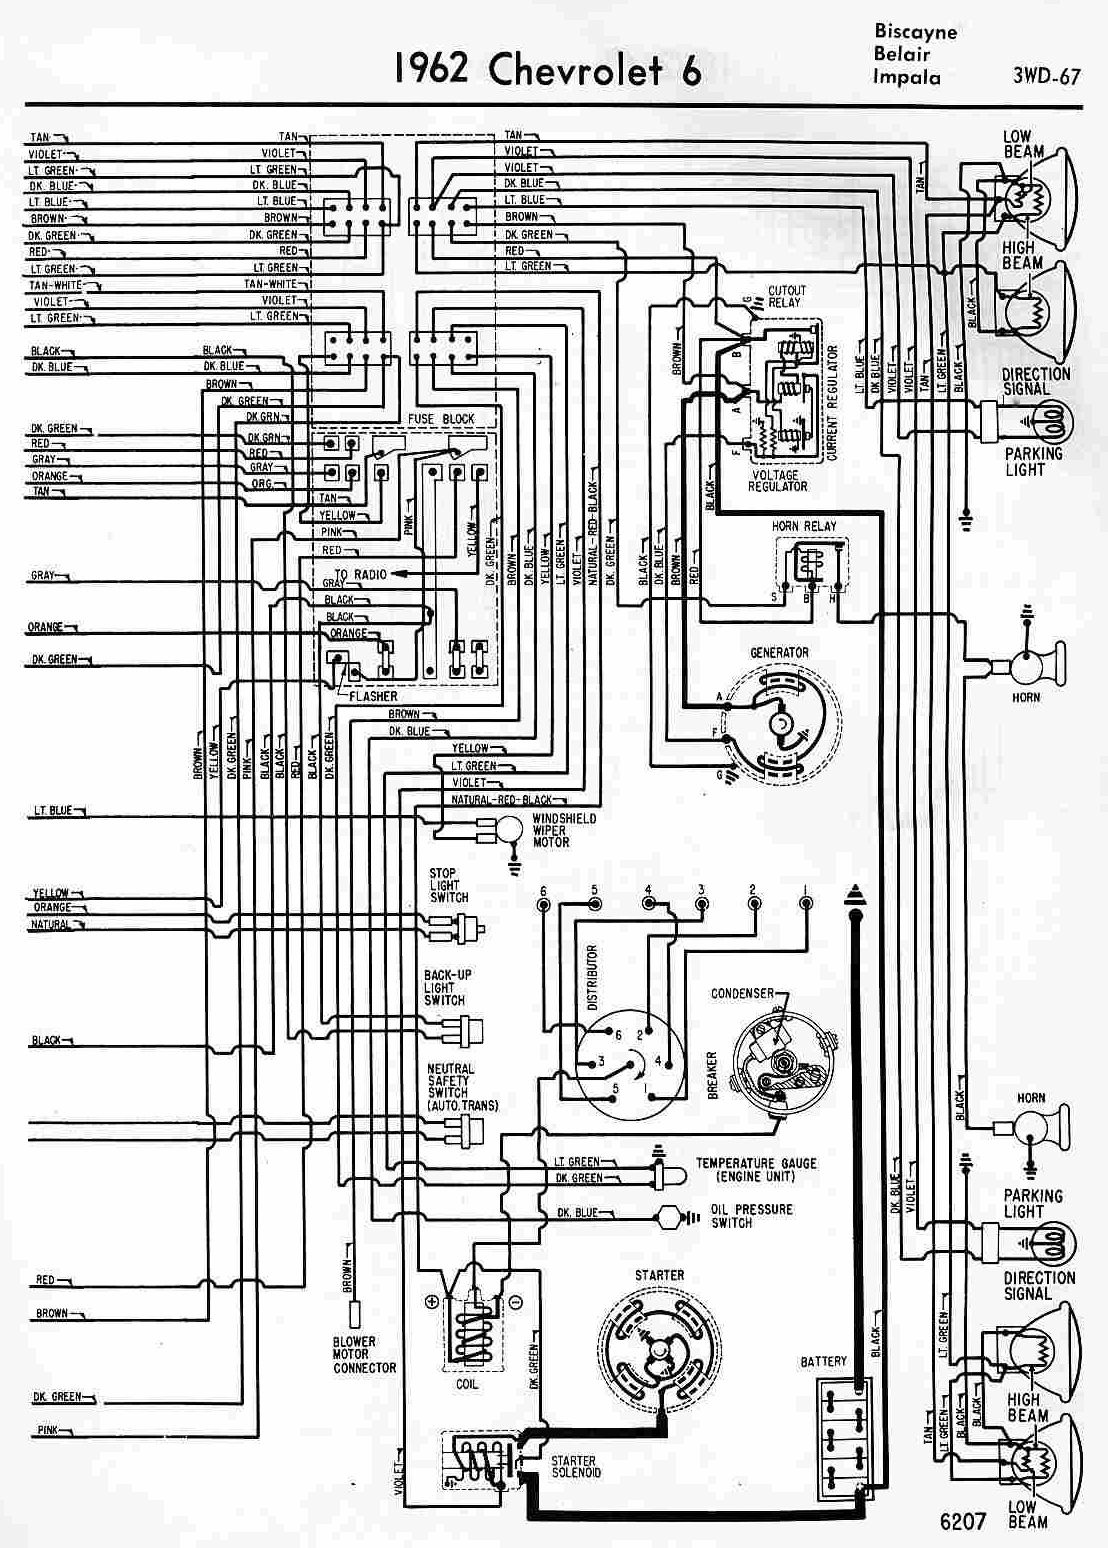 Chevrolet Biscayne C Belair And Impala Wiring Diagram on Ford 4 6 Engine Head Diagram